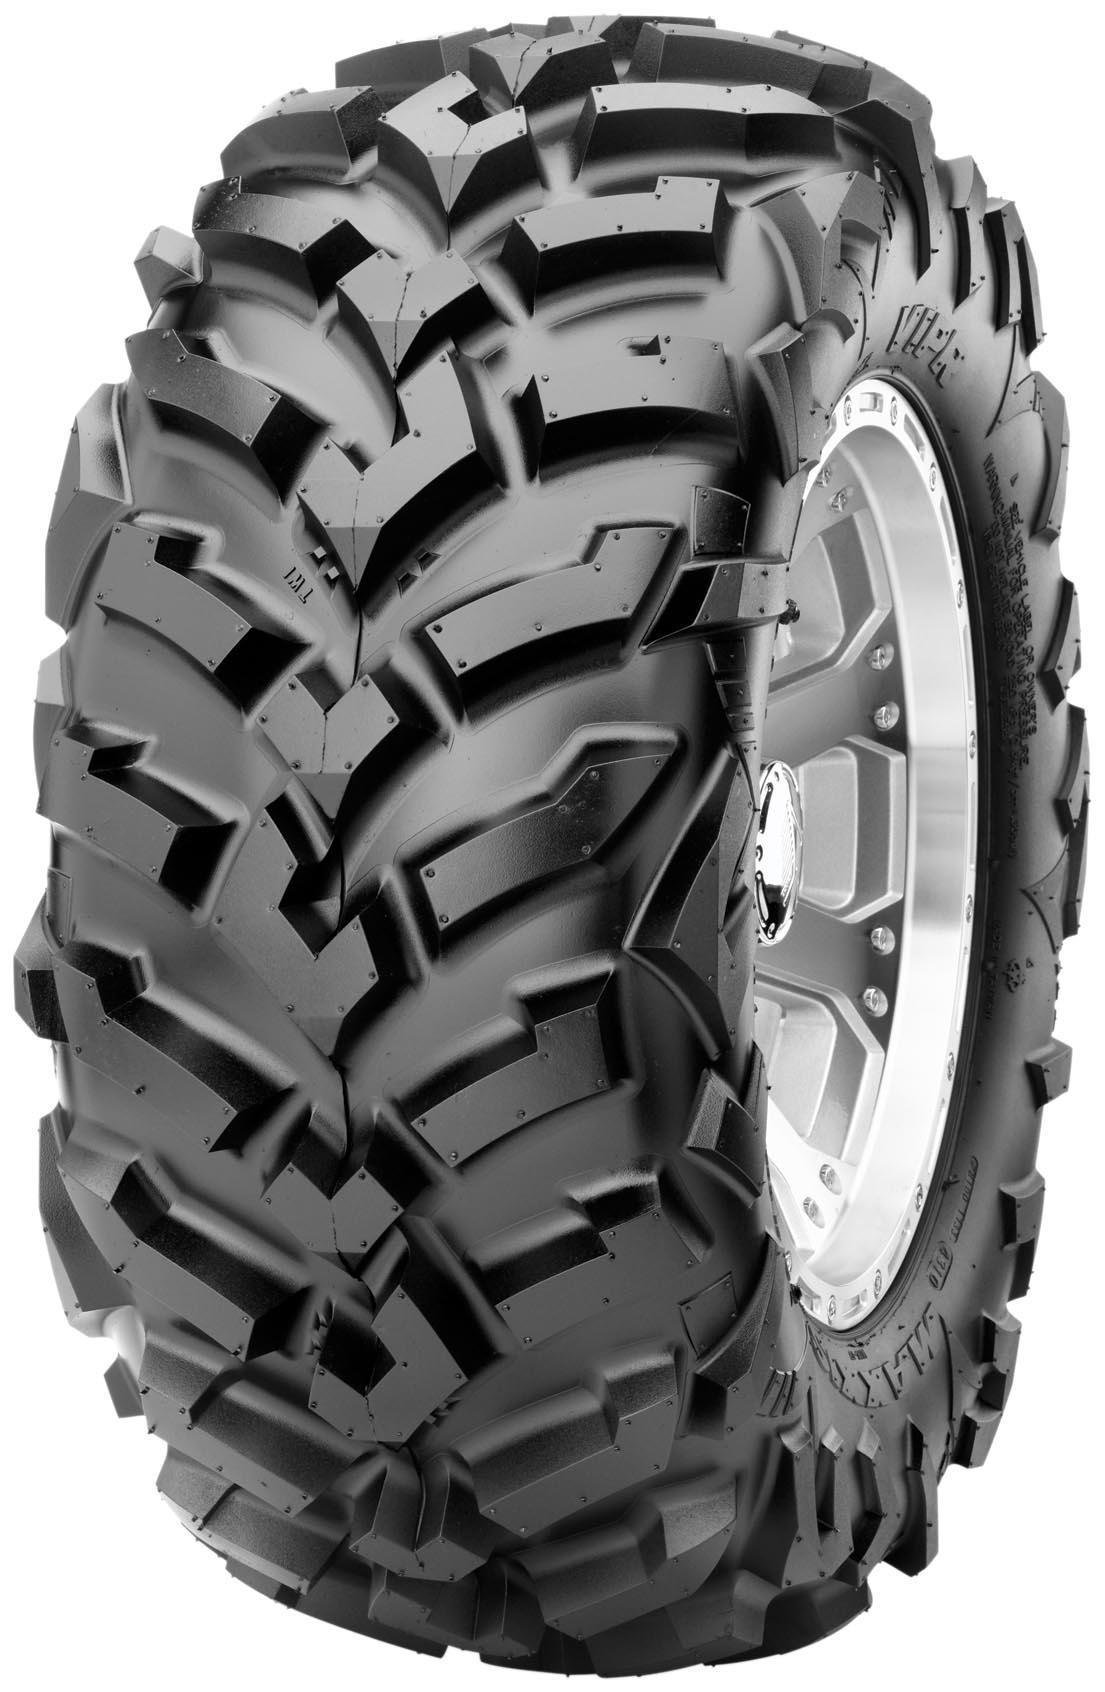 Maxxis TM00908100 MU16 Vipr Rear Tire - 29x11R-14, Position: Rear, Rim Size: 14, Tire Application: All-Terrain, Tire Size: 29x11x14, Tire Type: ATV/UTV, Tire Construction: Radial, Tire Ply: 6